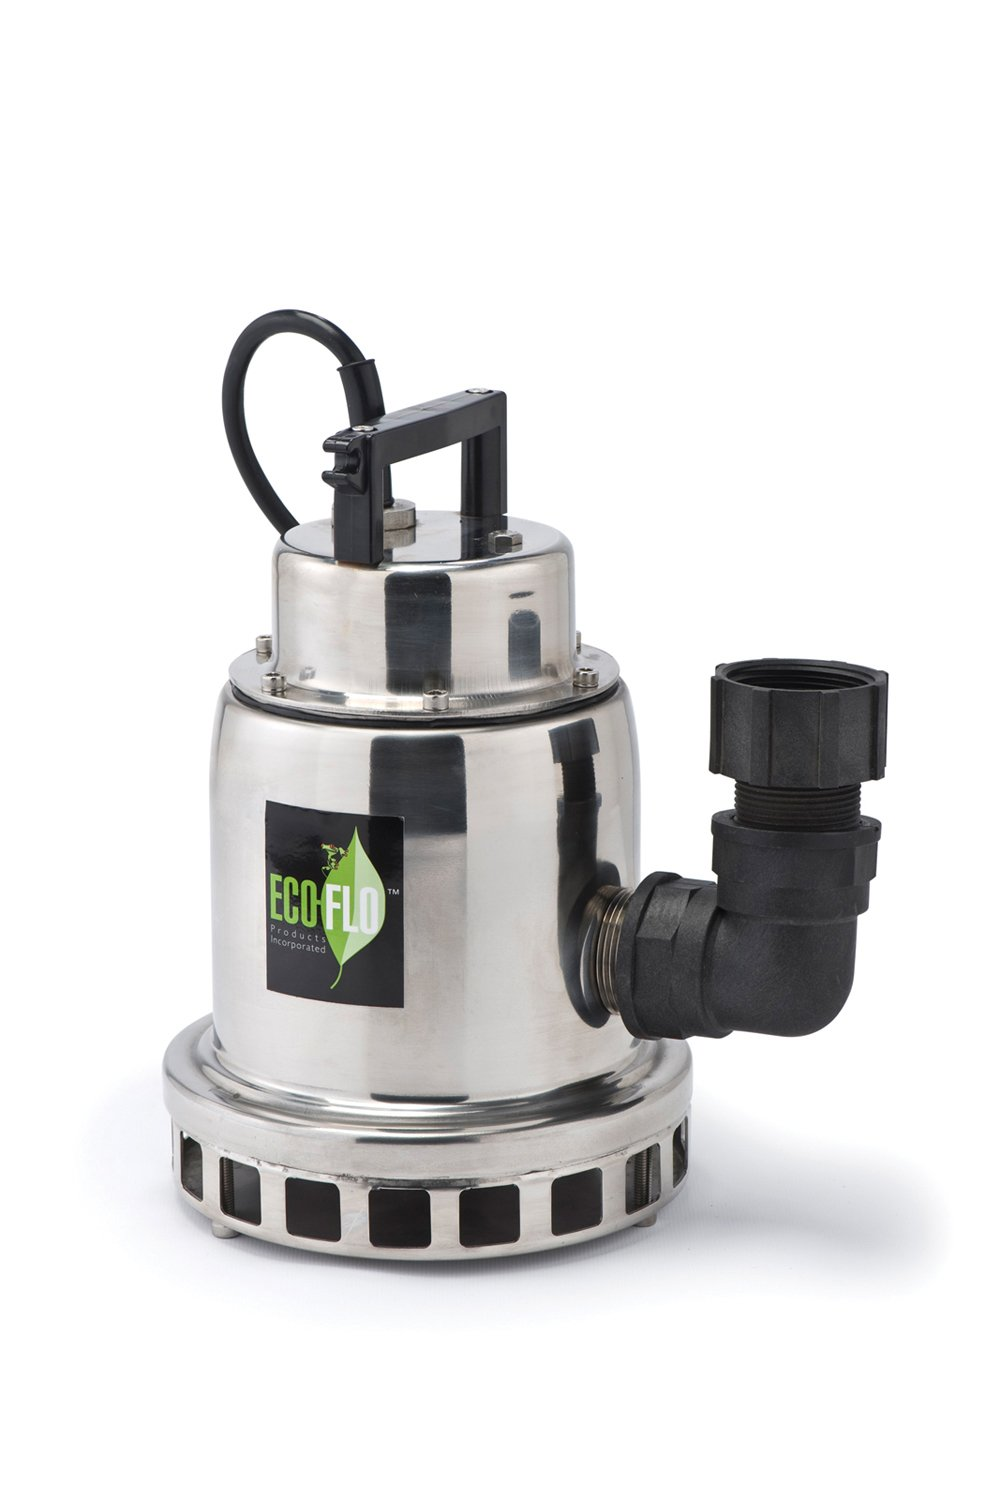 ECO-FLO Products SEP50M Stainless Steel Waterfall Fountain Pump, 1/2 HP, 2,400 GPH